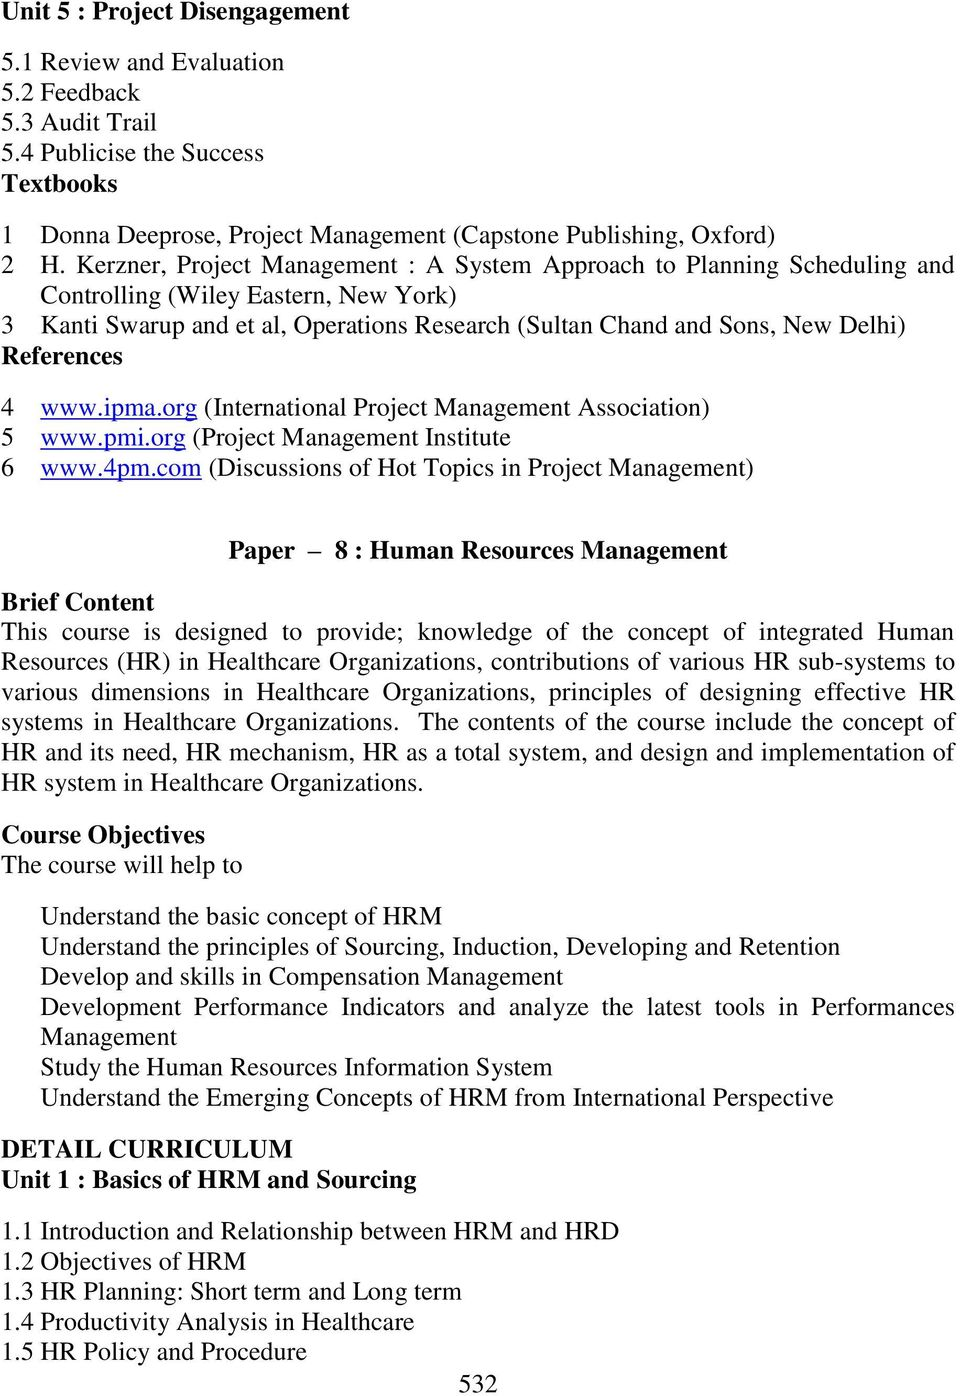 resume process improvement manager writing resume